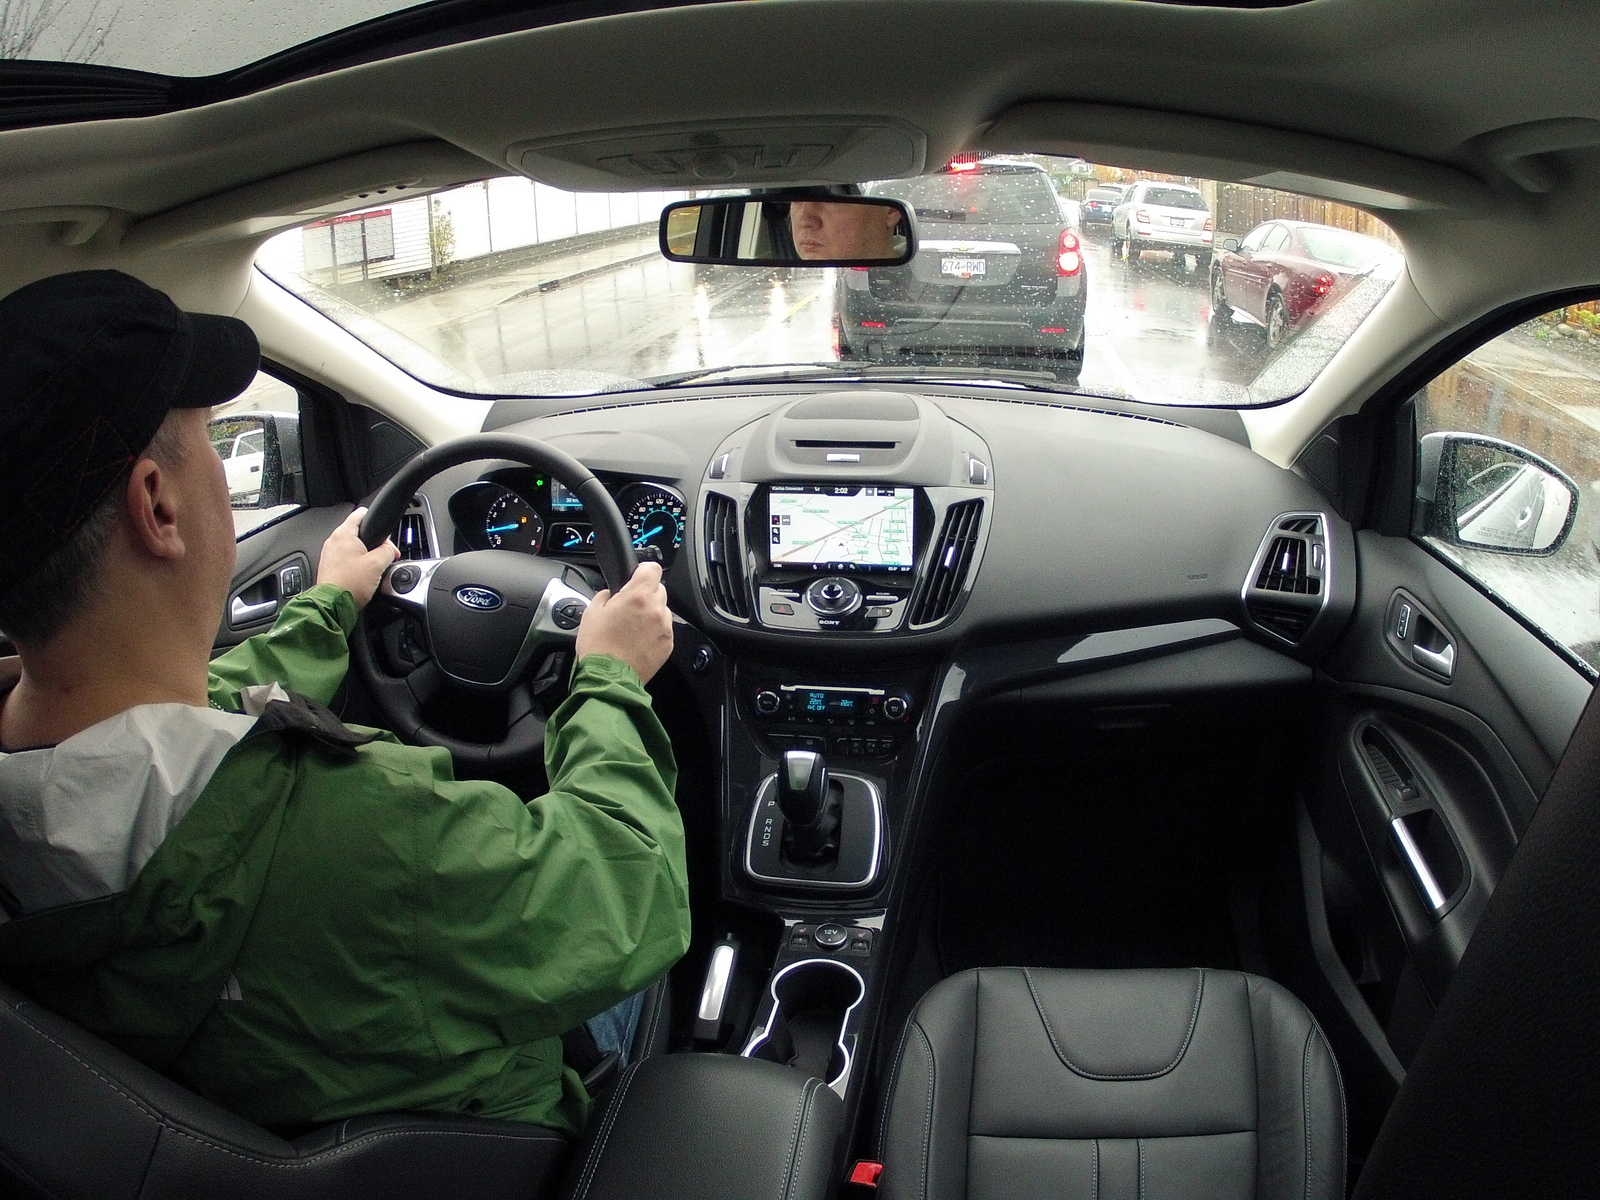 Inside the 2013 Ford Escape